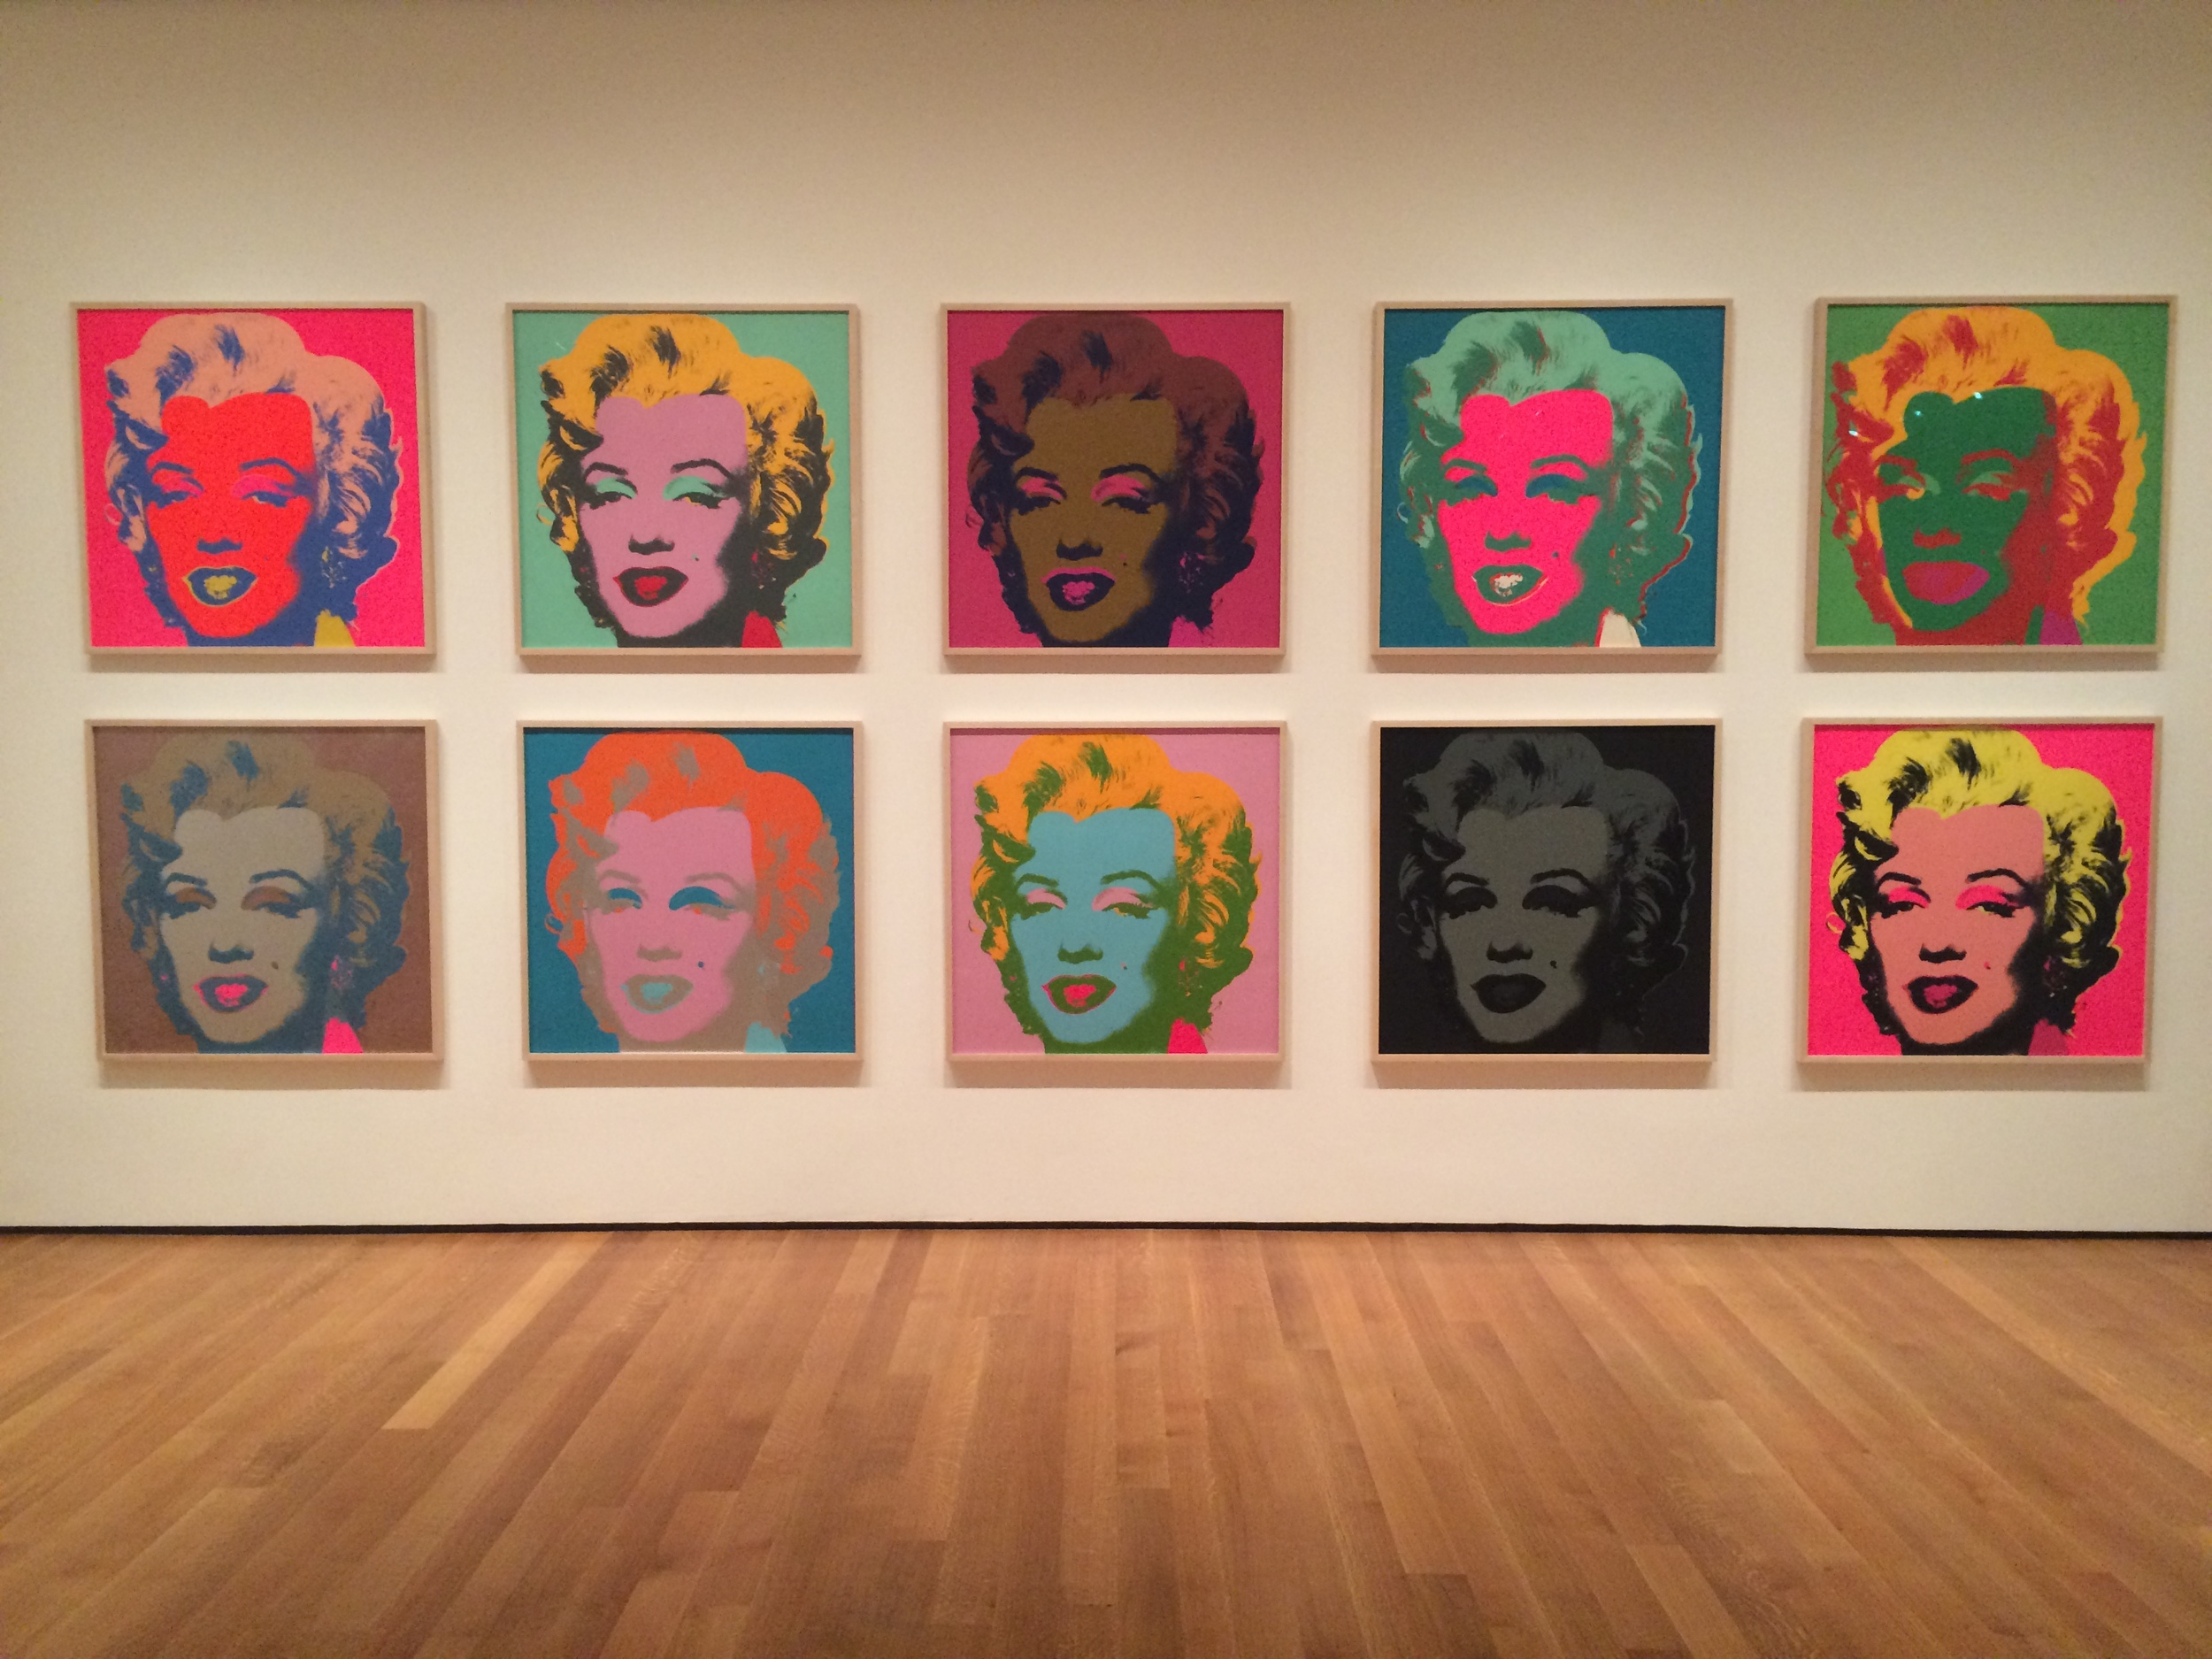 We visited MoMA on Friday and they had an entire Warhol exhibit! After writing about three papers on him for my summer classes, I was completely enamored with seeing his work. Especially these Marilyns!